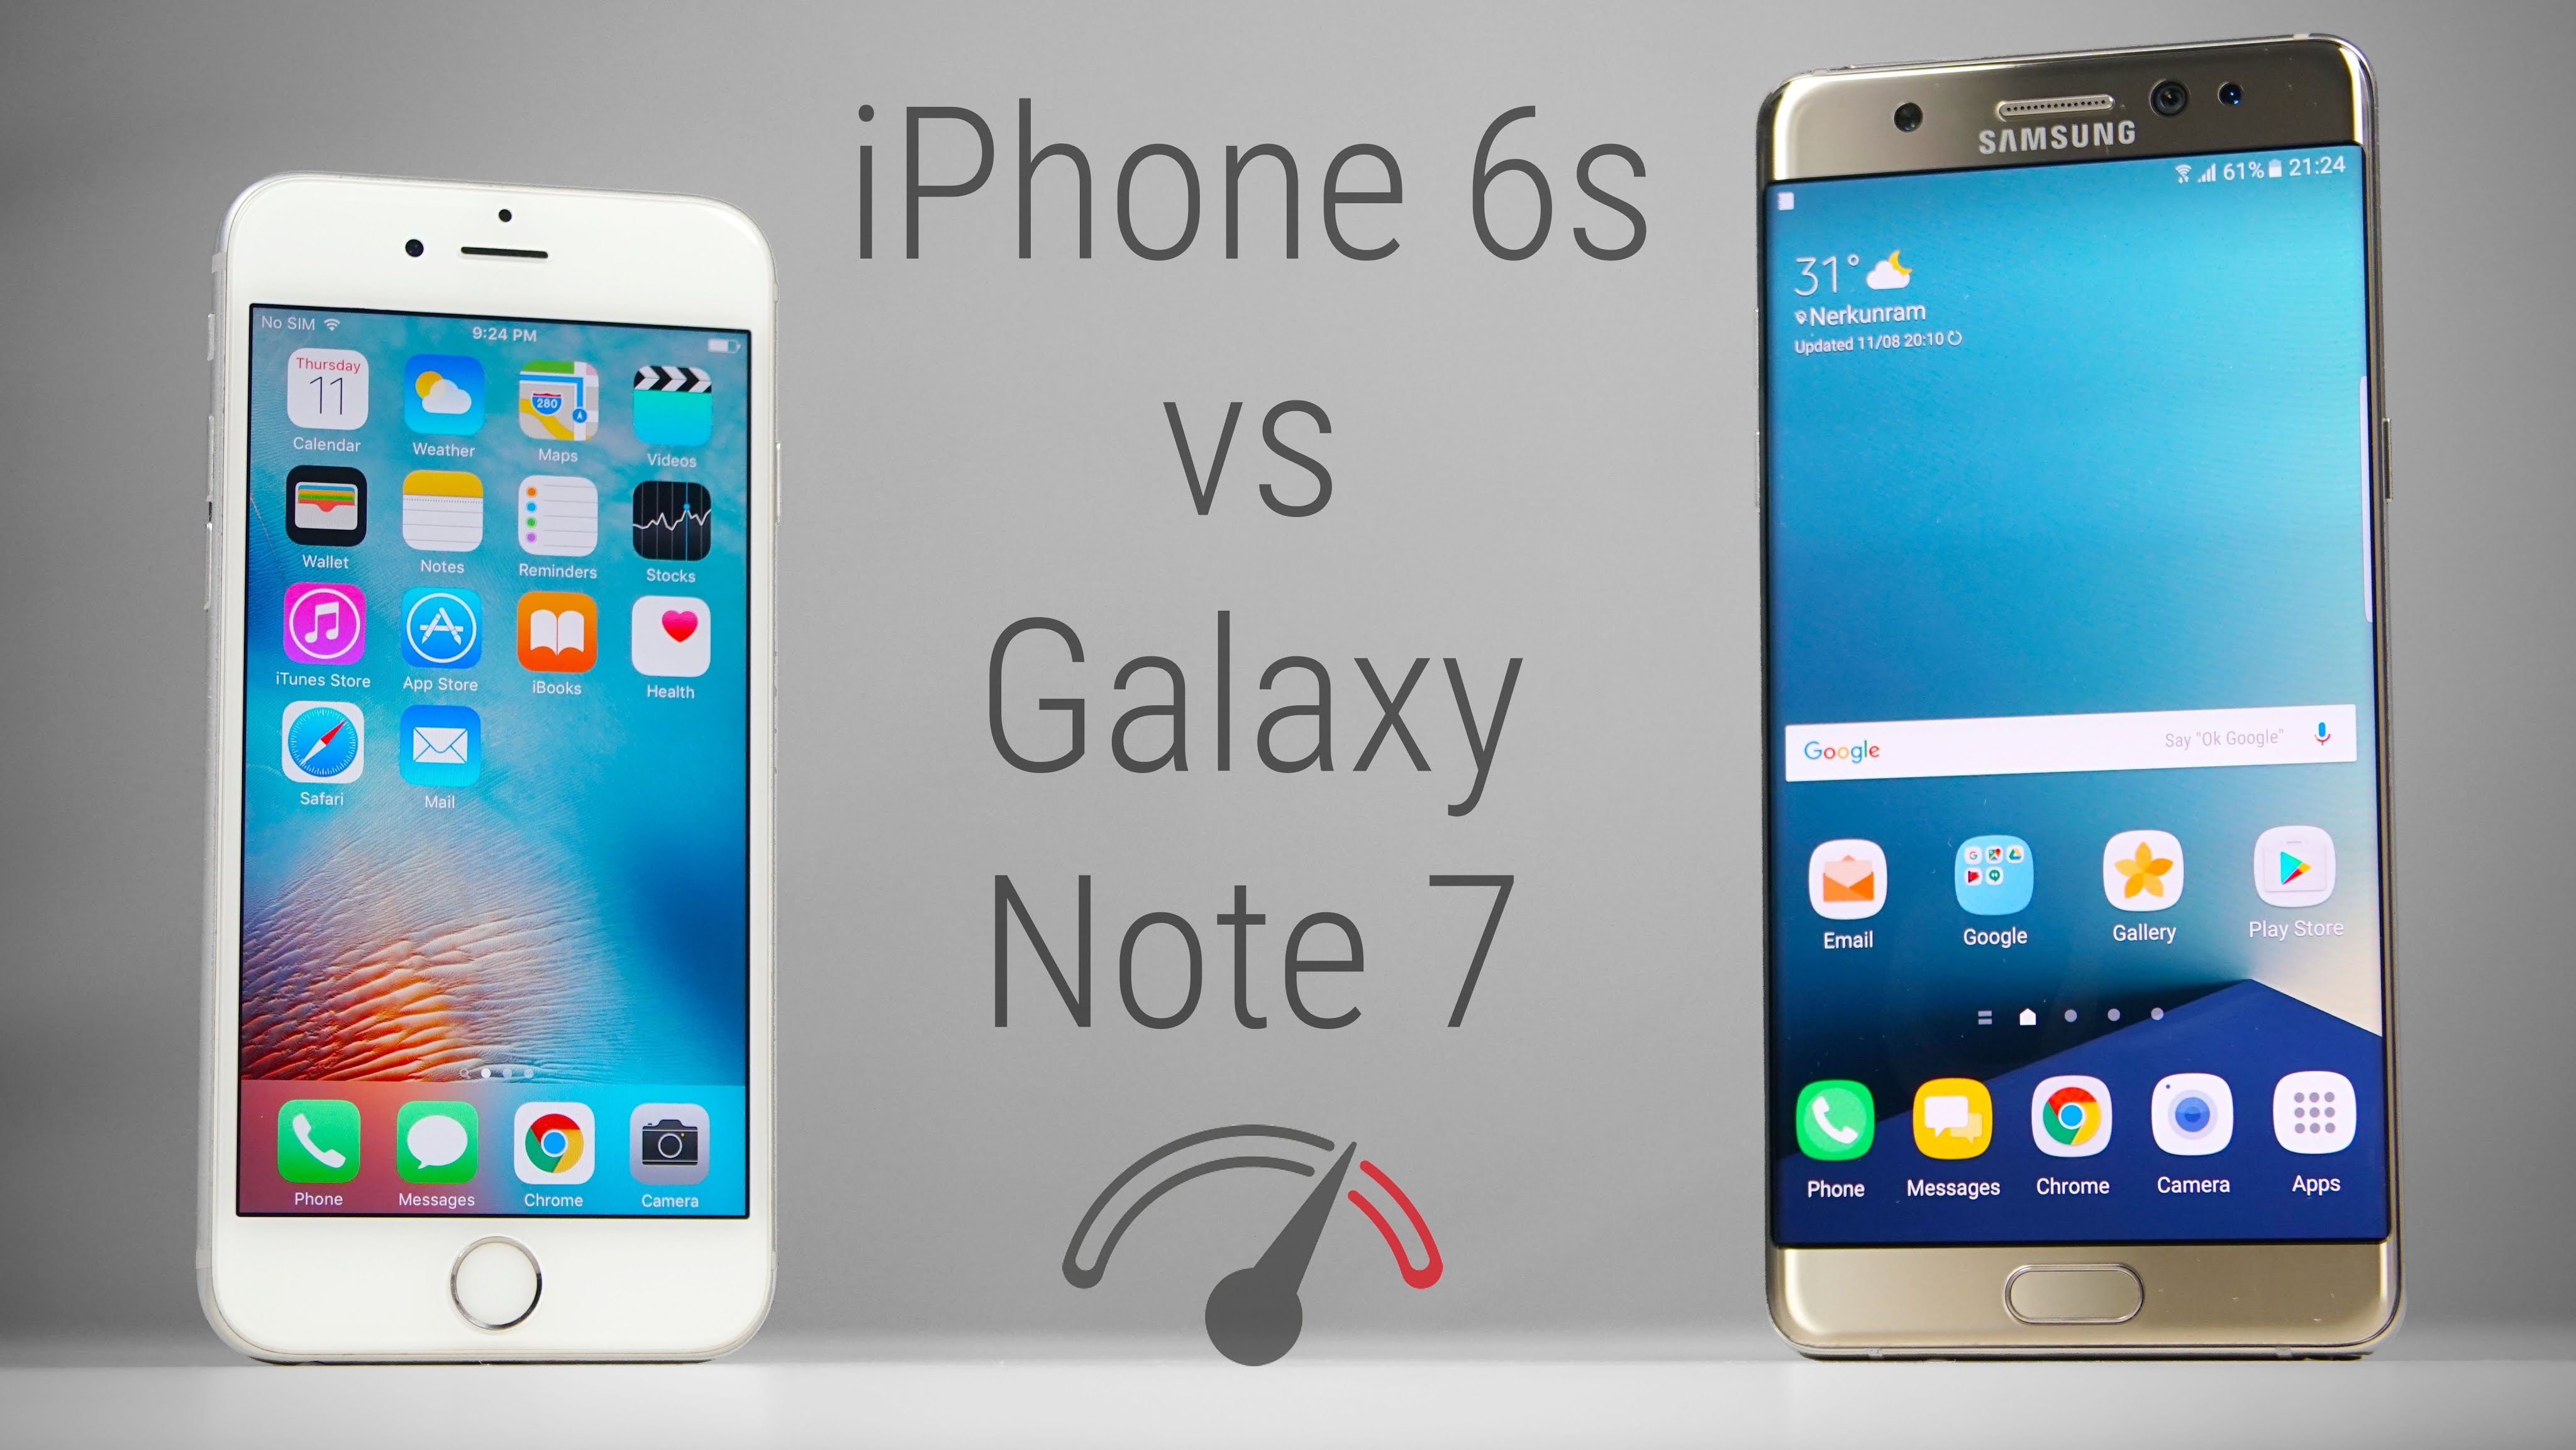 iphone6s vs note7 speed test rychlost porovnanie - ApplePortal.sk d6bc69273ce